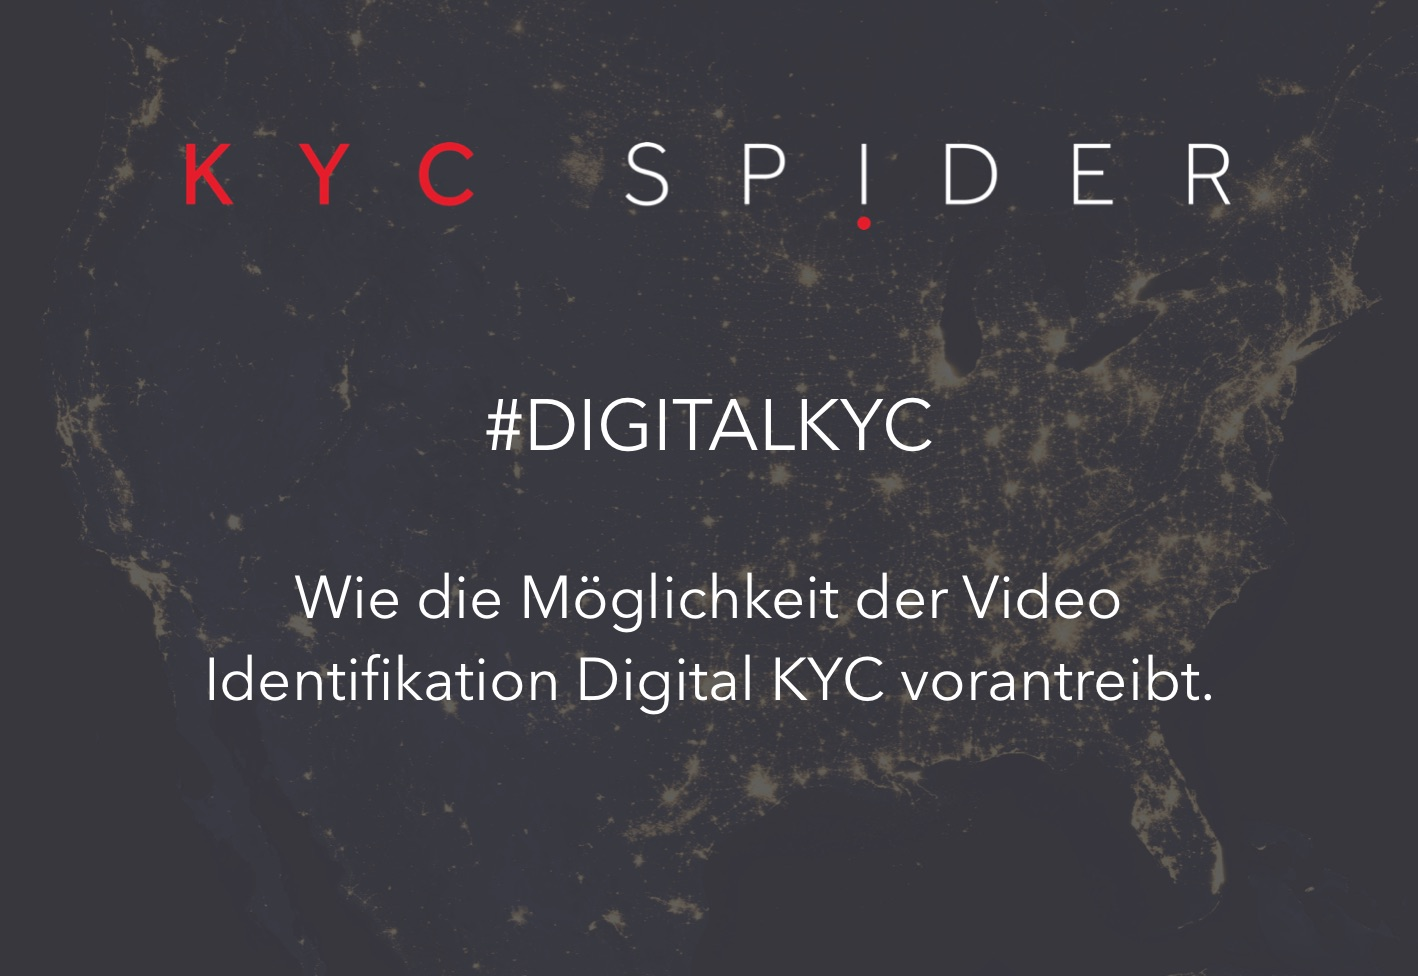 KYC Spider_DigitalKYC_VideoIdentification